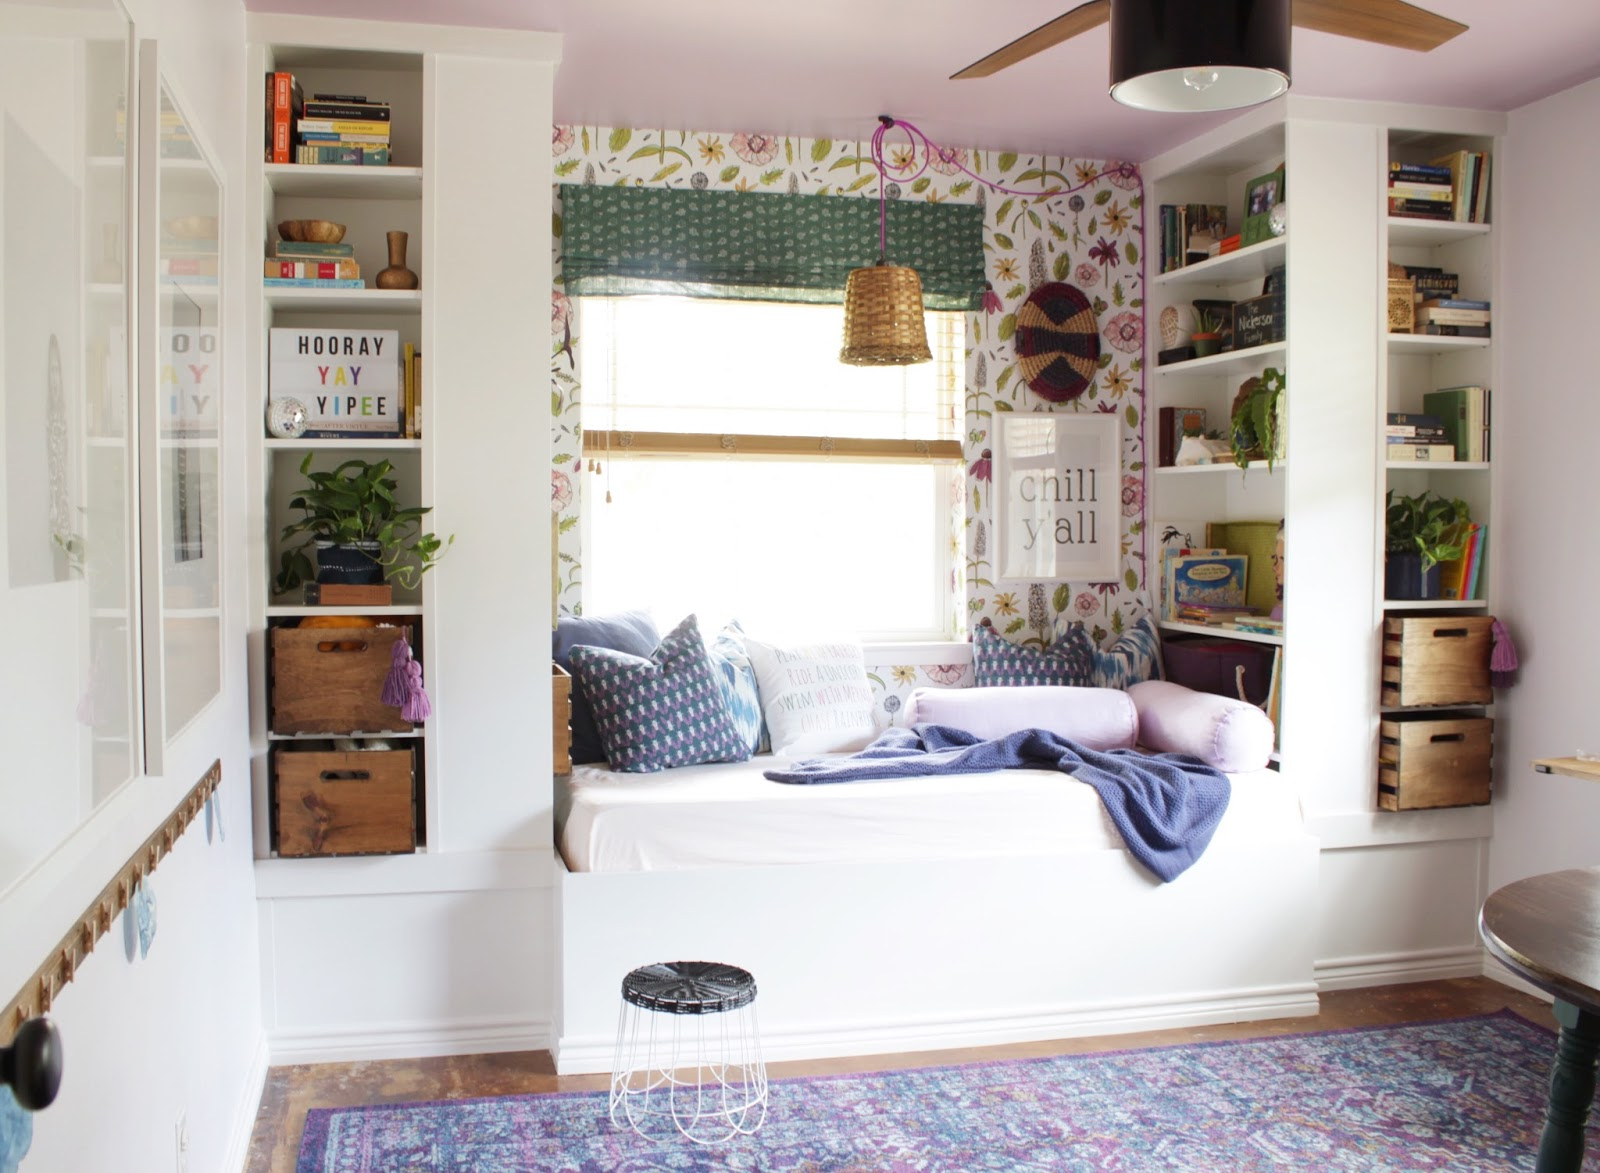 Playroom with builtins from IKEA billy bookcases